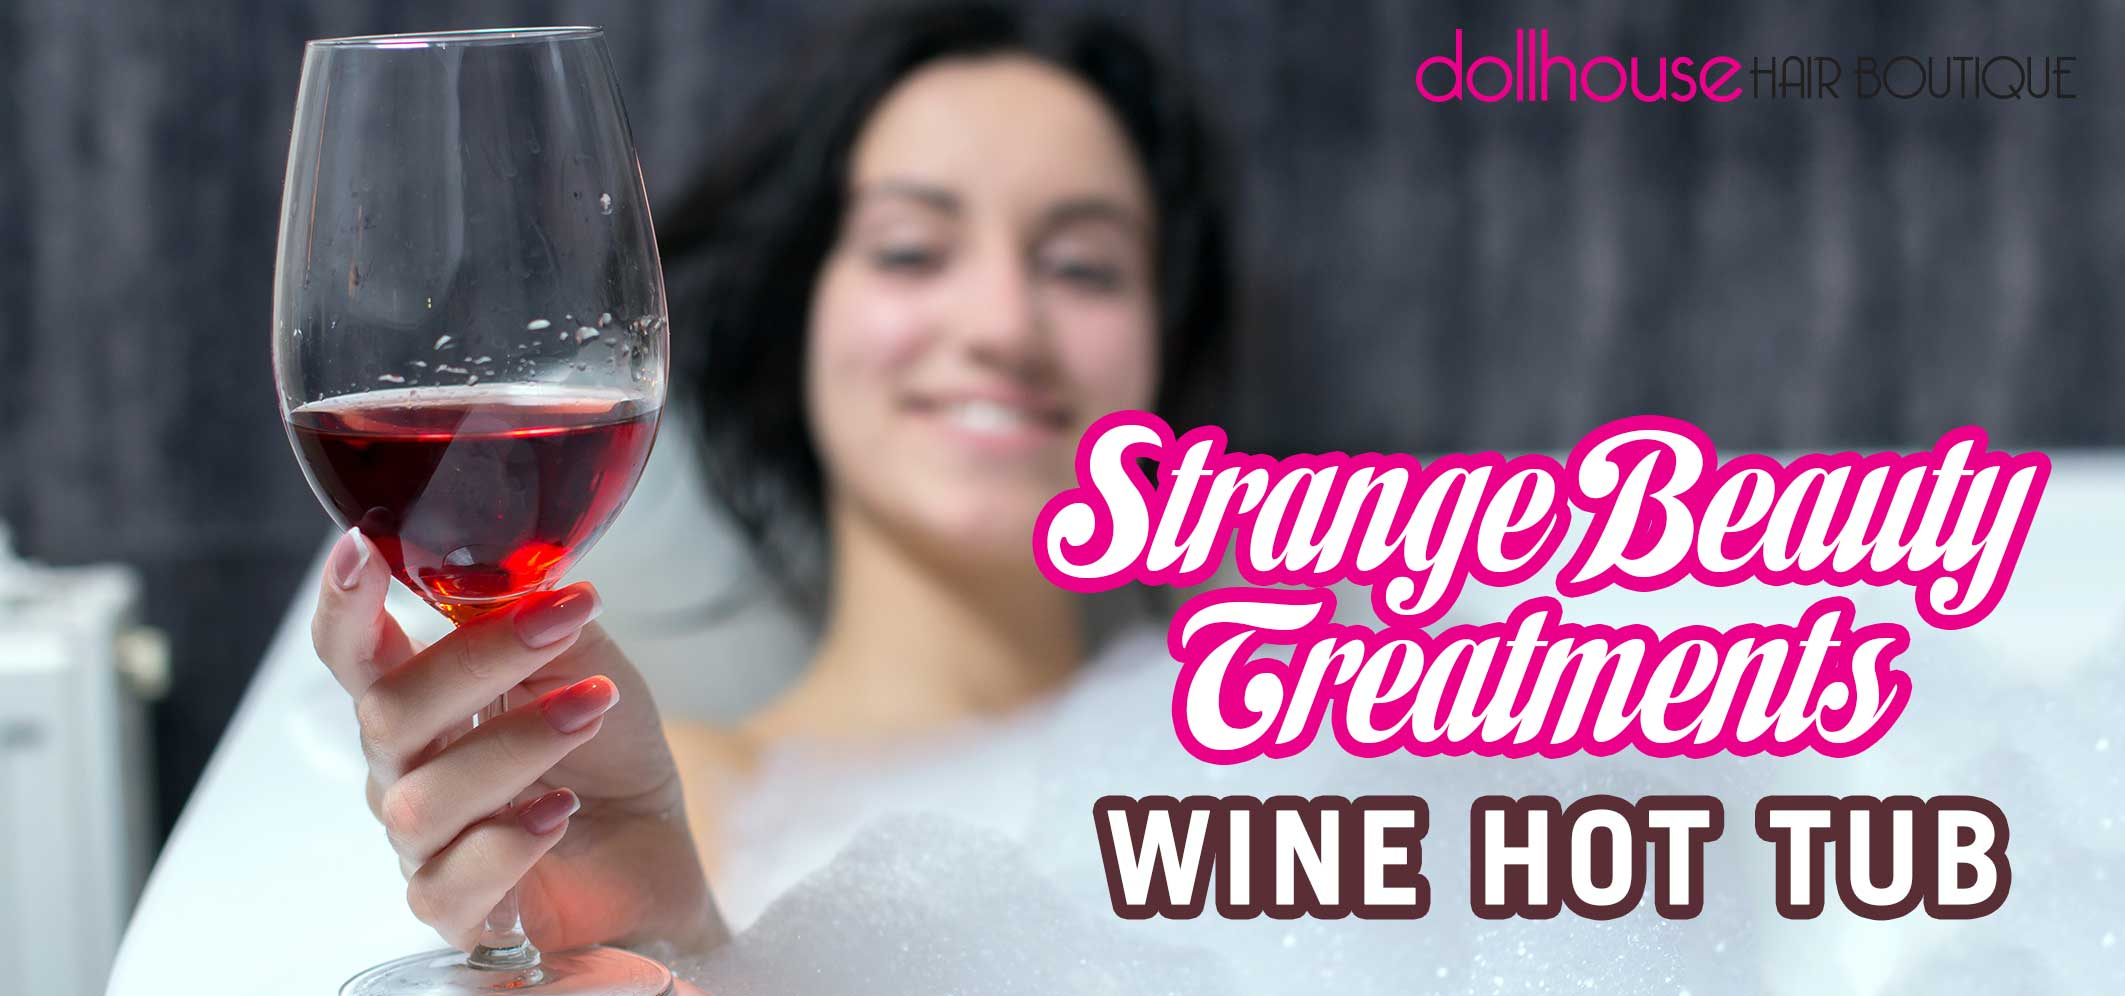 Strange-Beauty-Treatments-Wine-Hot-Tub